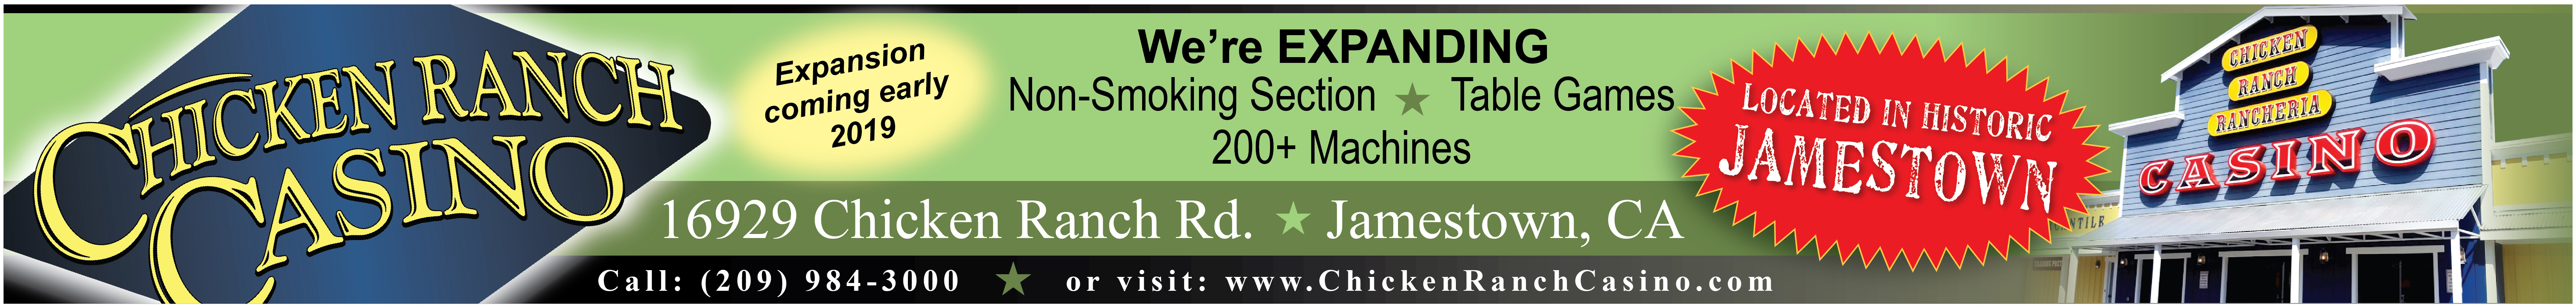 Chicken Ranch Casino - 2018 - 1 - Banner - Scores - Top